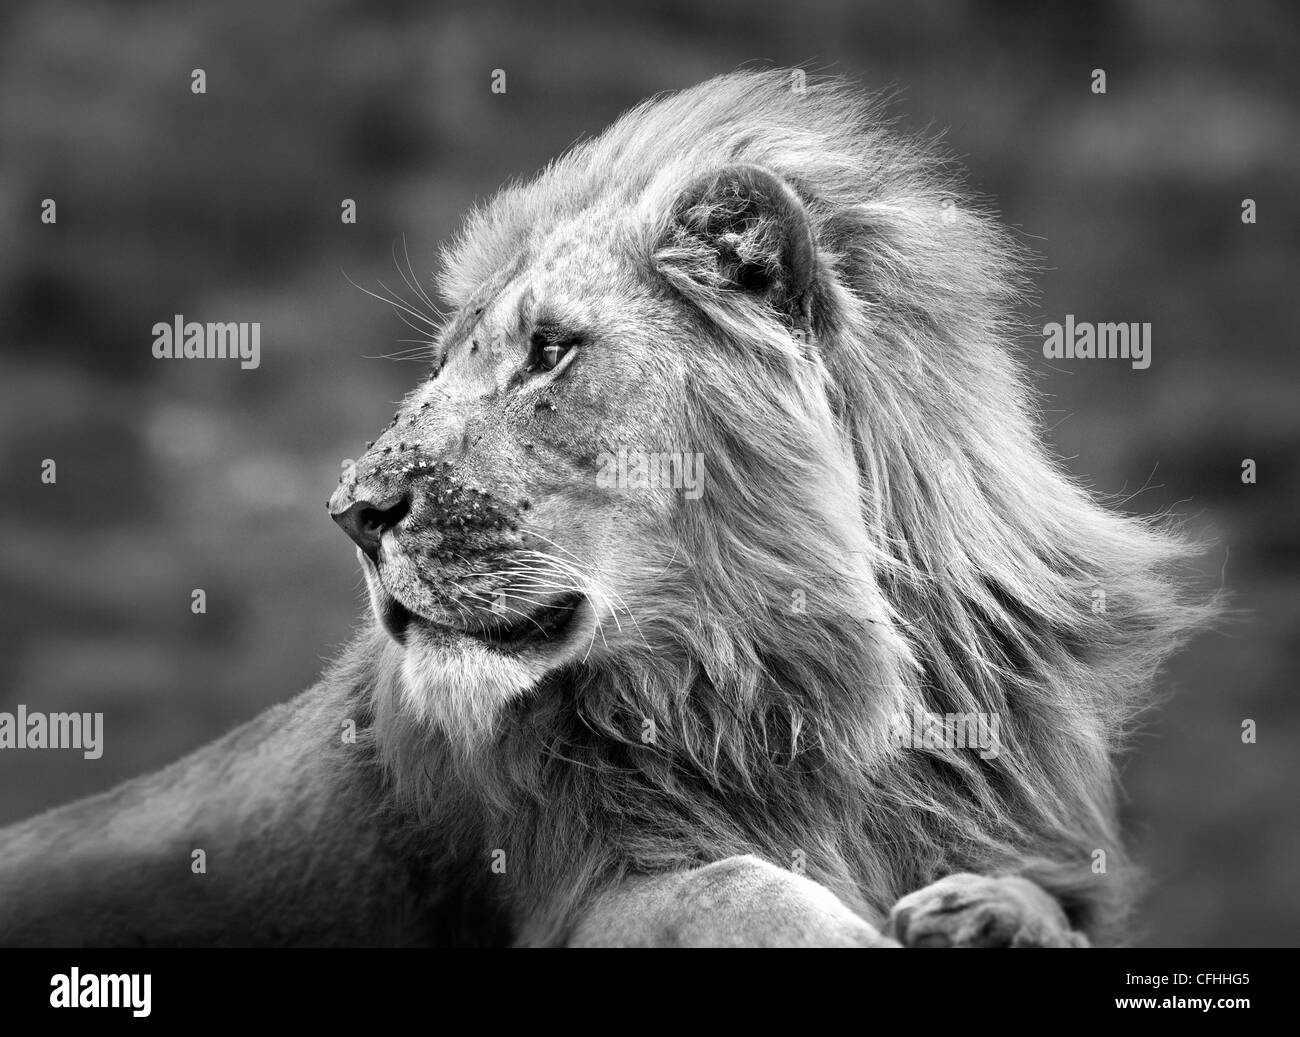 African lion portrait, South Africa - Stock Image